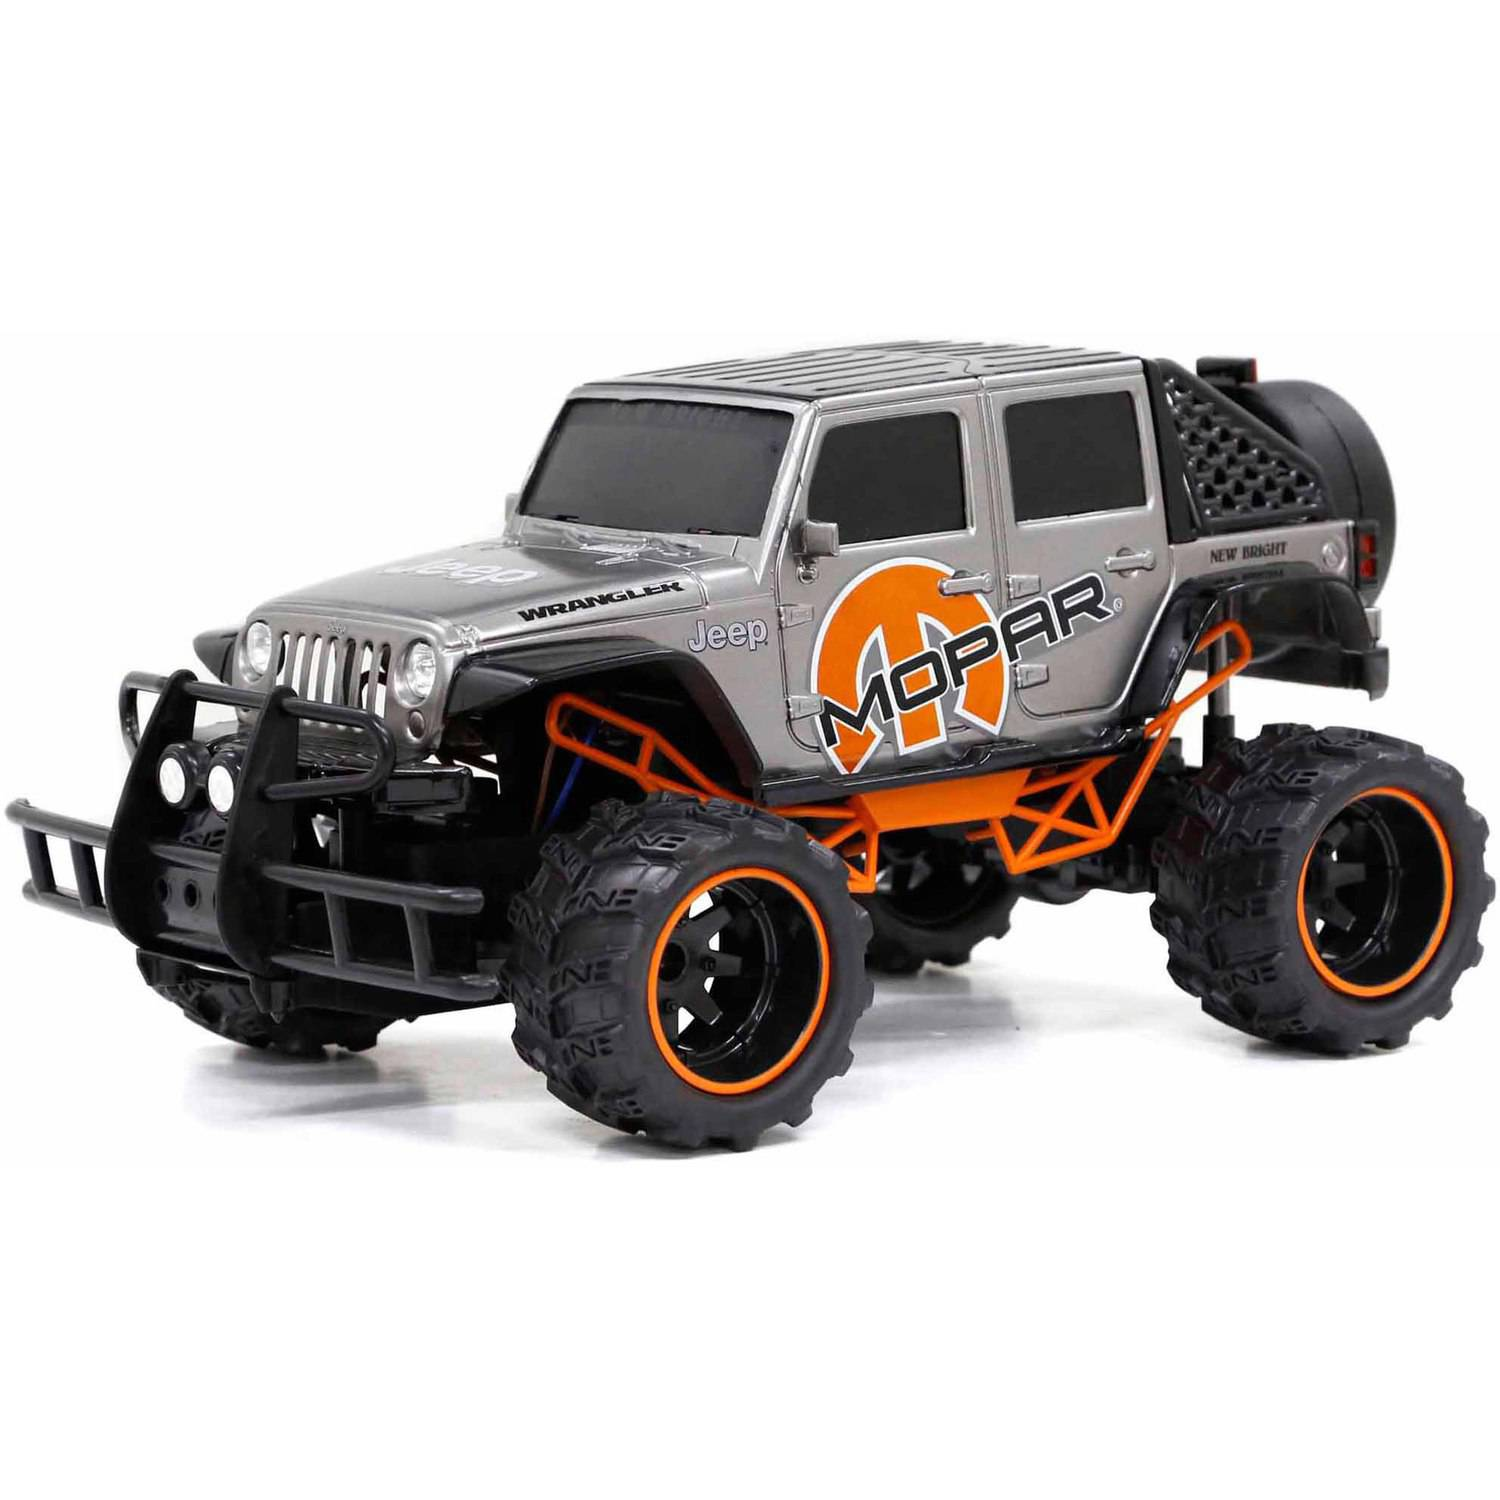 6.4V Baja Extreme Mopar 4-Door Jeep Full Function Radio-Controlled Vehicle